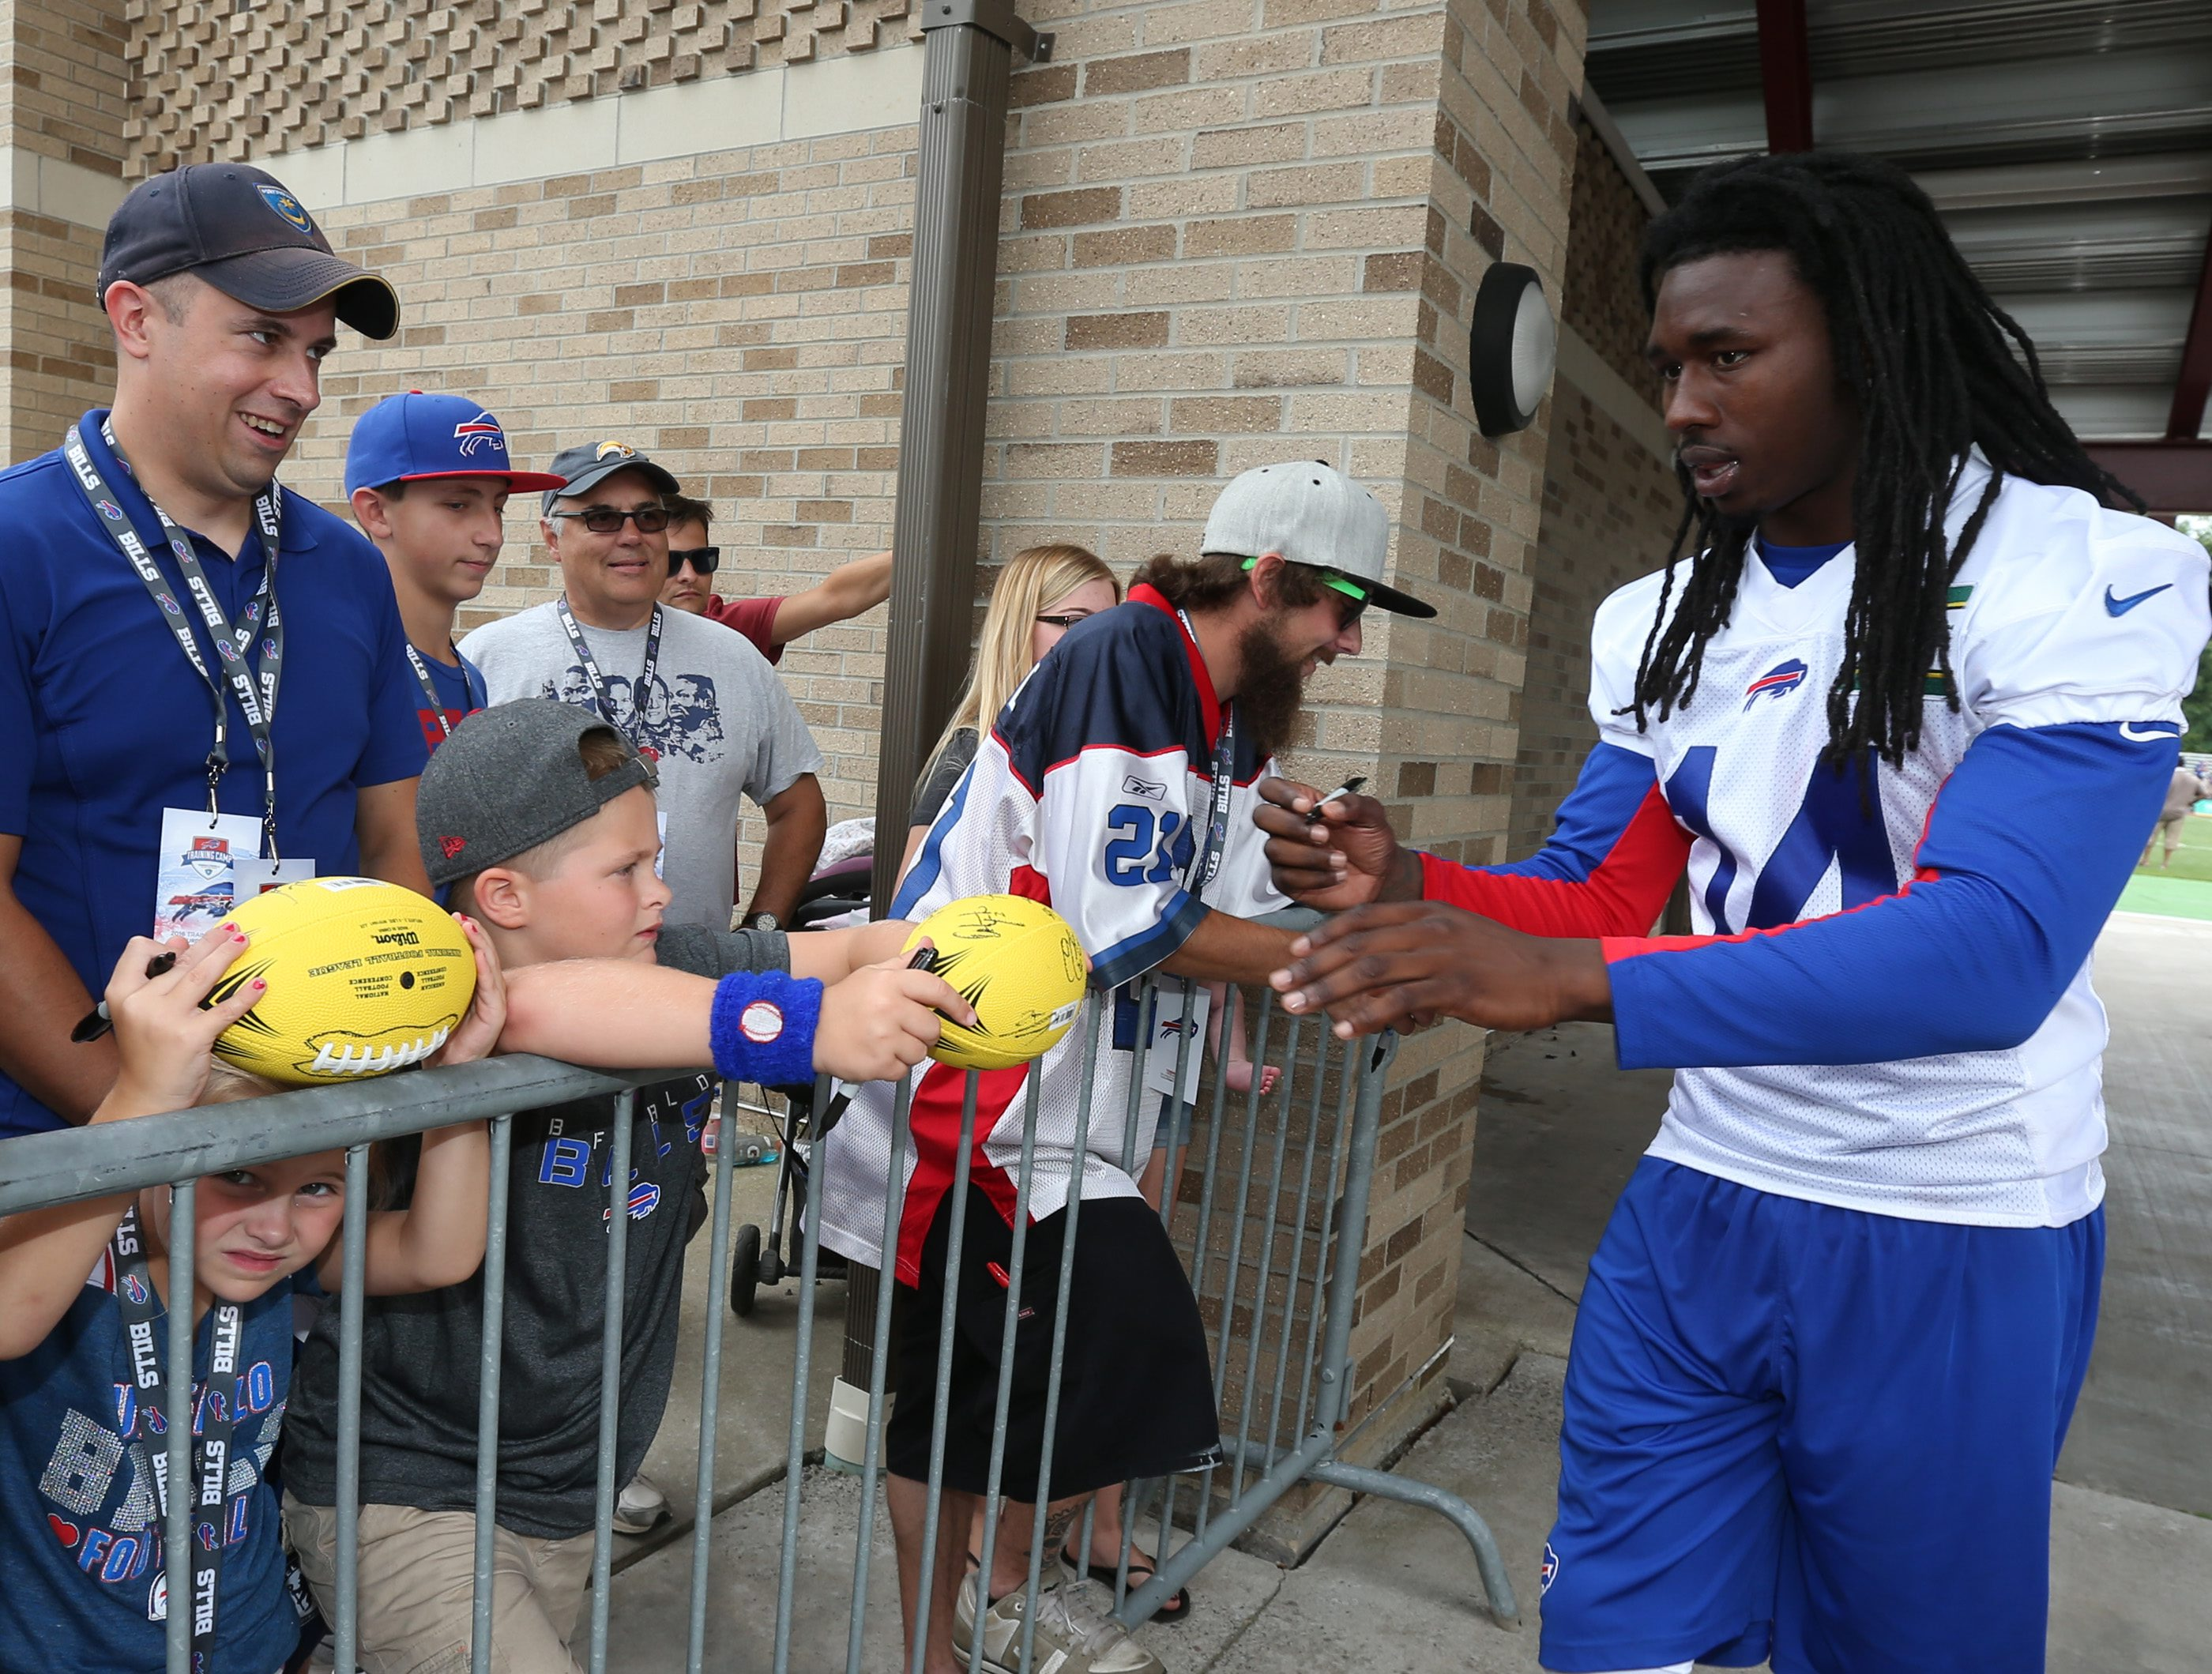 Buffalo Bills wide receiver Sammy Watkins (14) signs autographs after the first day of the 2016 training camp at St. John Fisher College in Pittsford,NY on Saturday, July 30, 2016. (James P. McCoy/ Buffalo News)